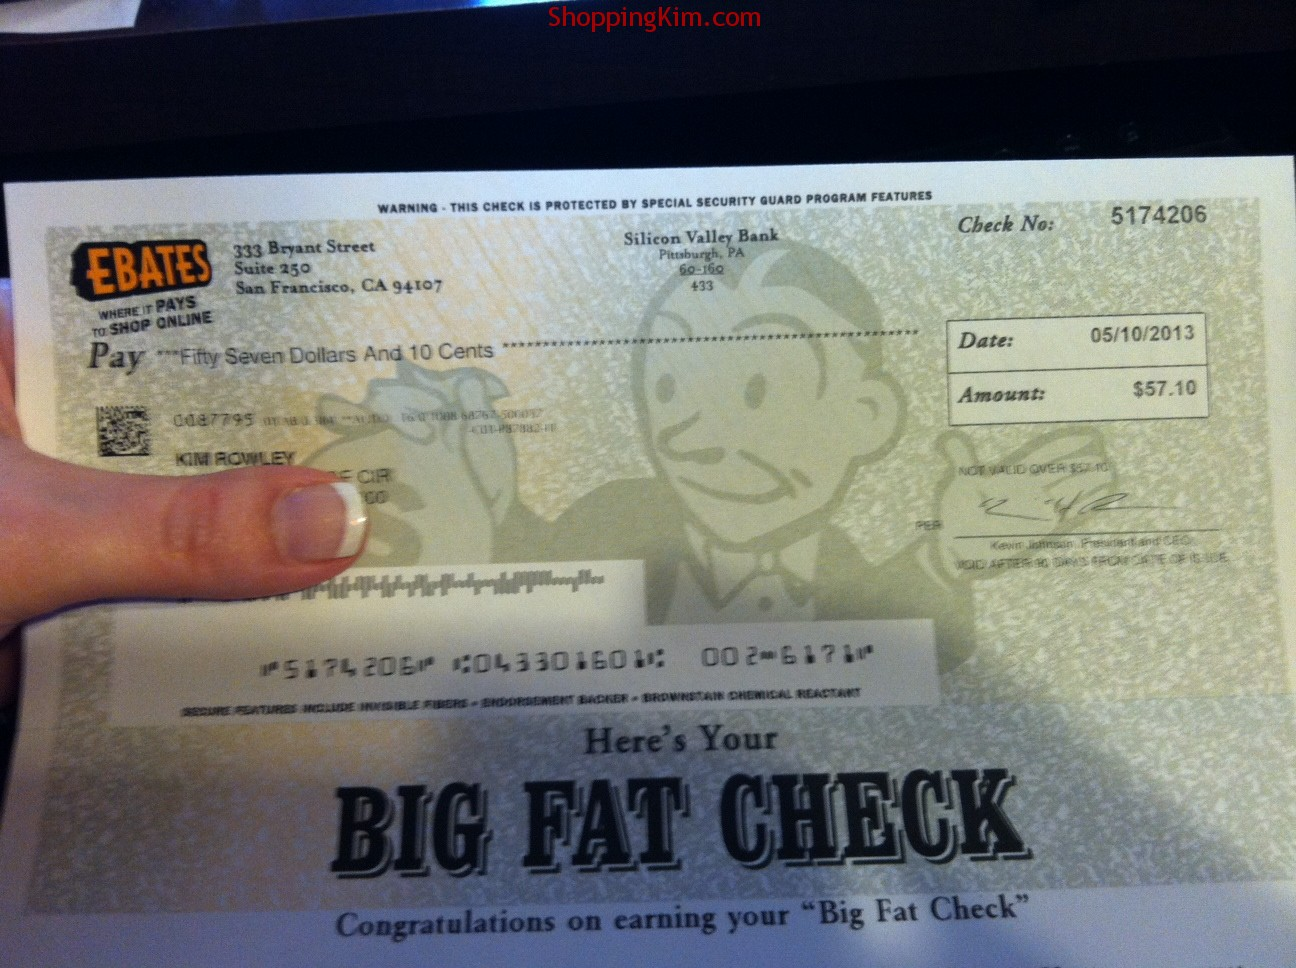 My Big Fat Rebate Check from Ebates